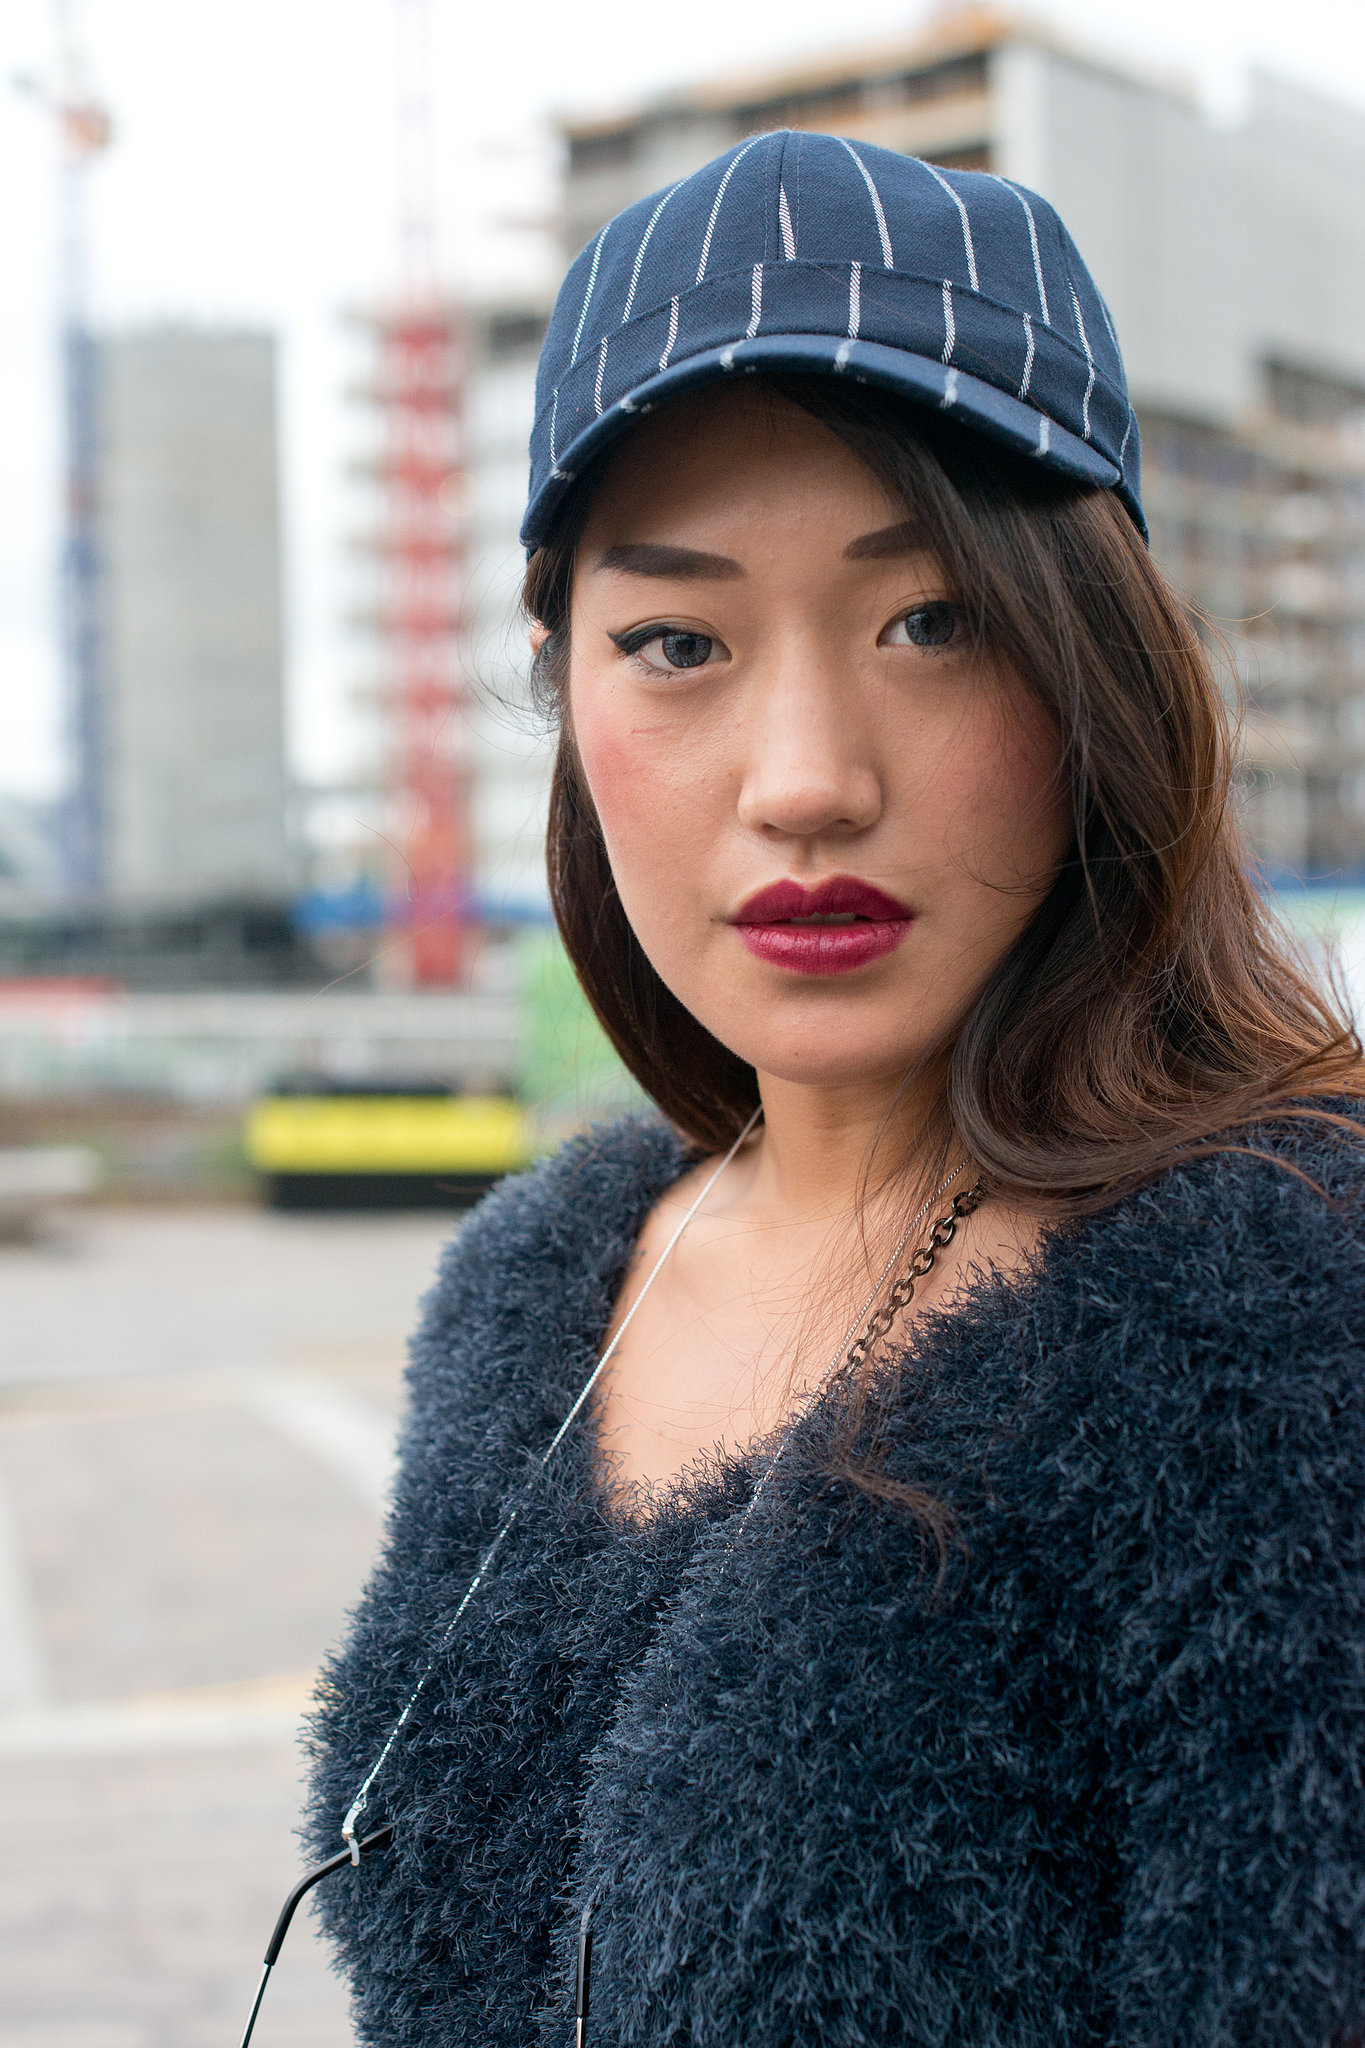 Keep things glossy by opting for a sleek blowout under your baseball cap.